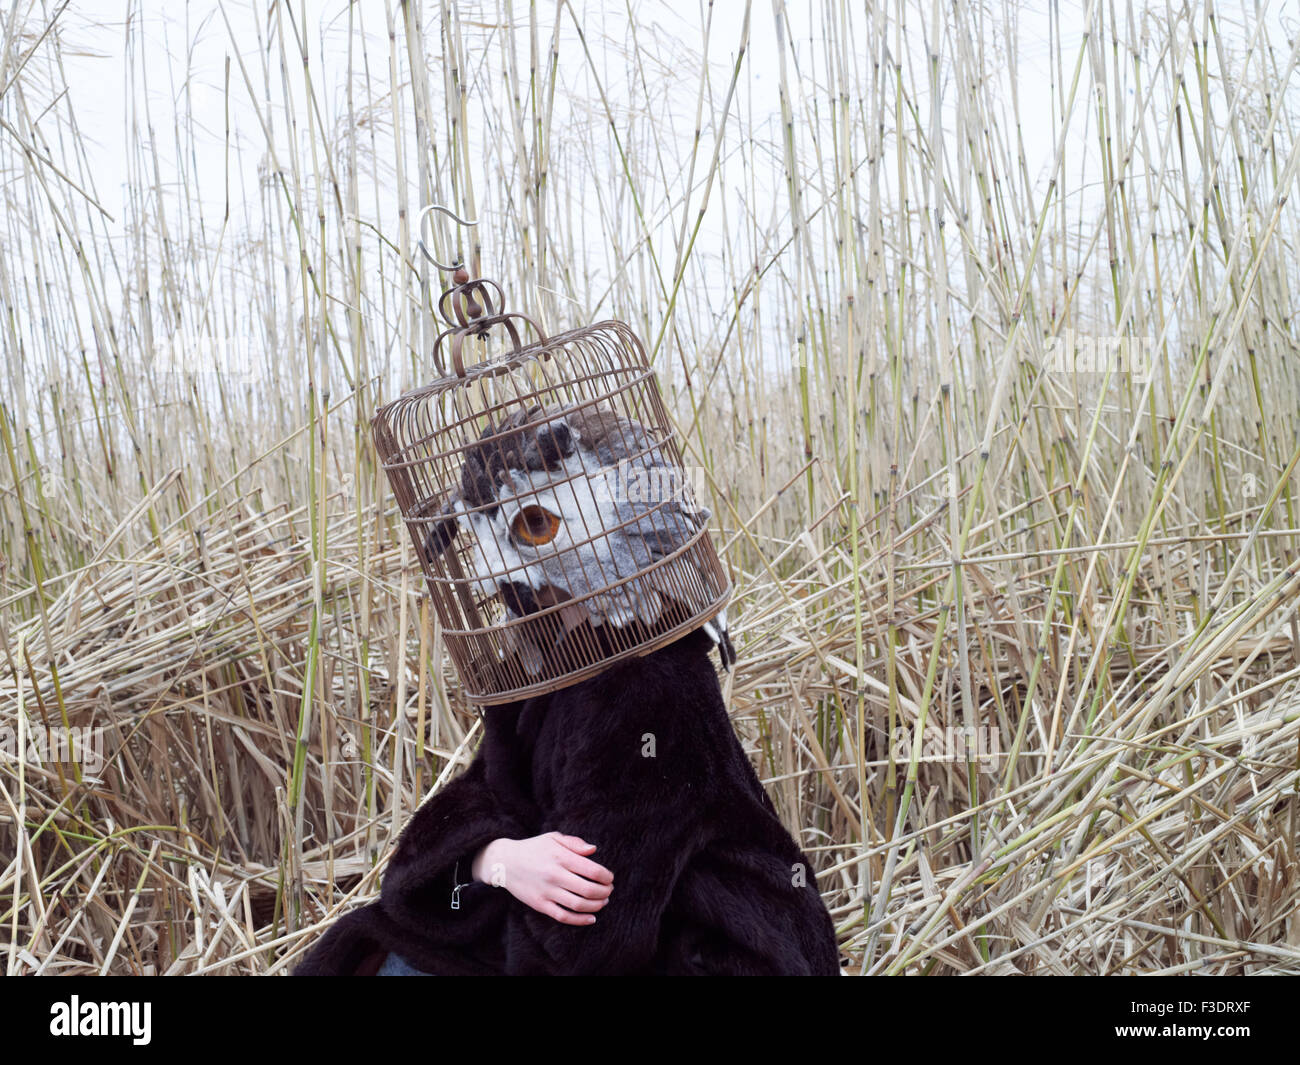 A felt mask being worn by a model. These masks are often worn for theatre and fashion productions. Stock Photo